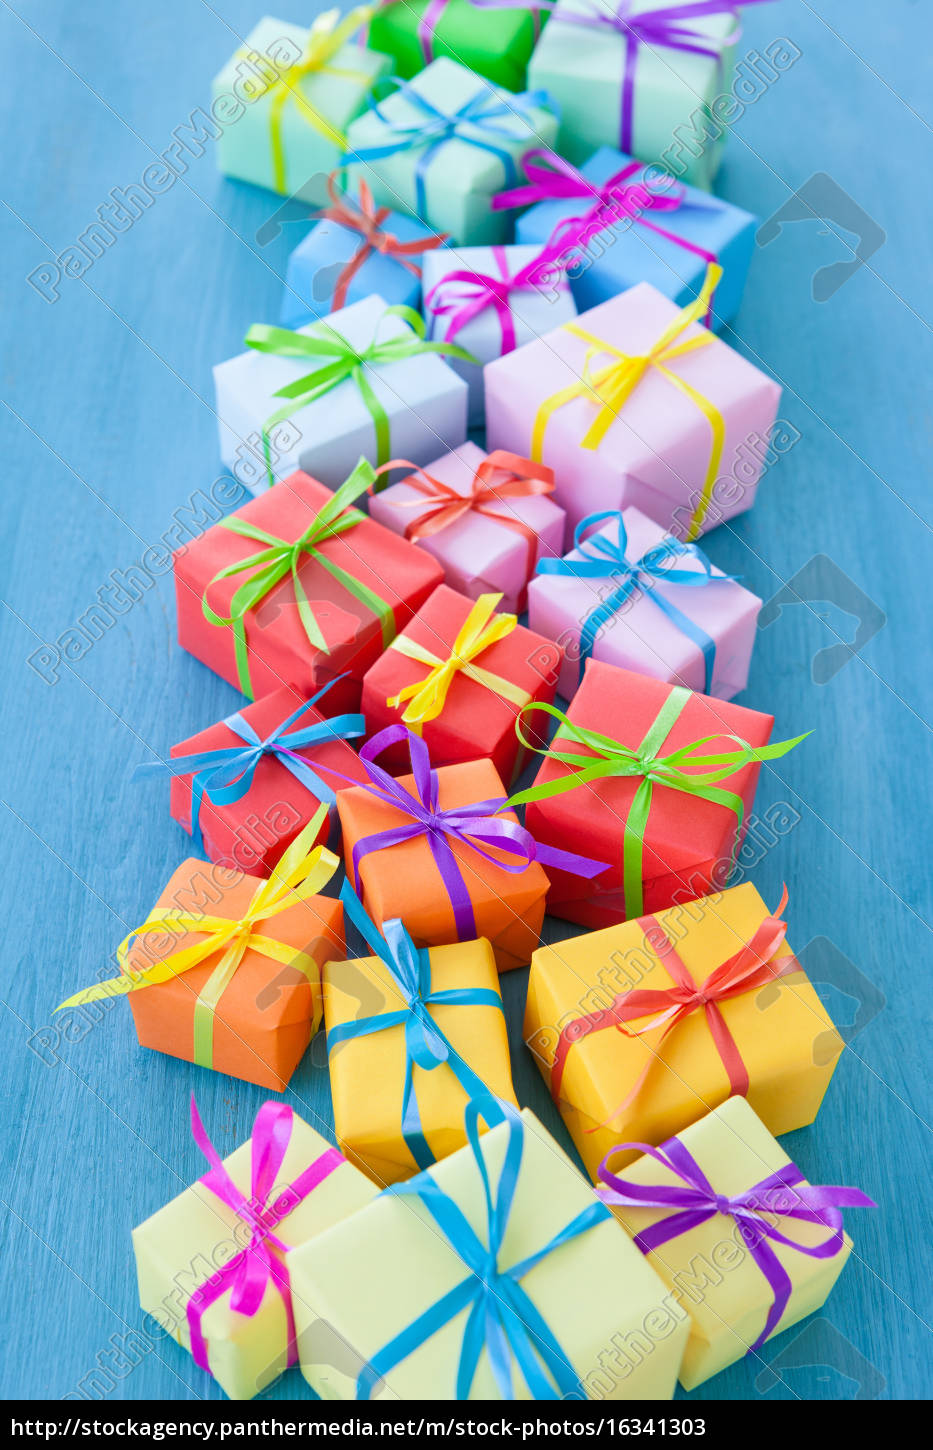 small, colorful, gifts - 16341303